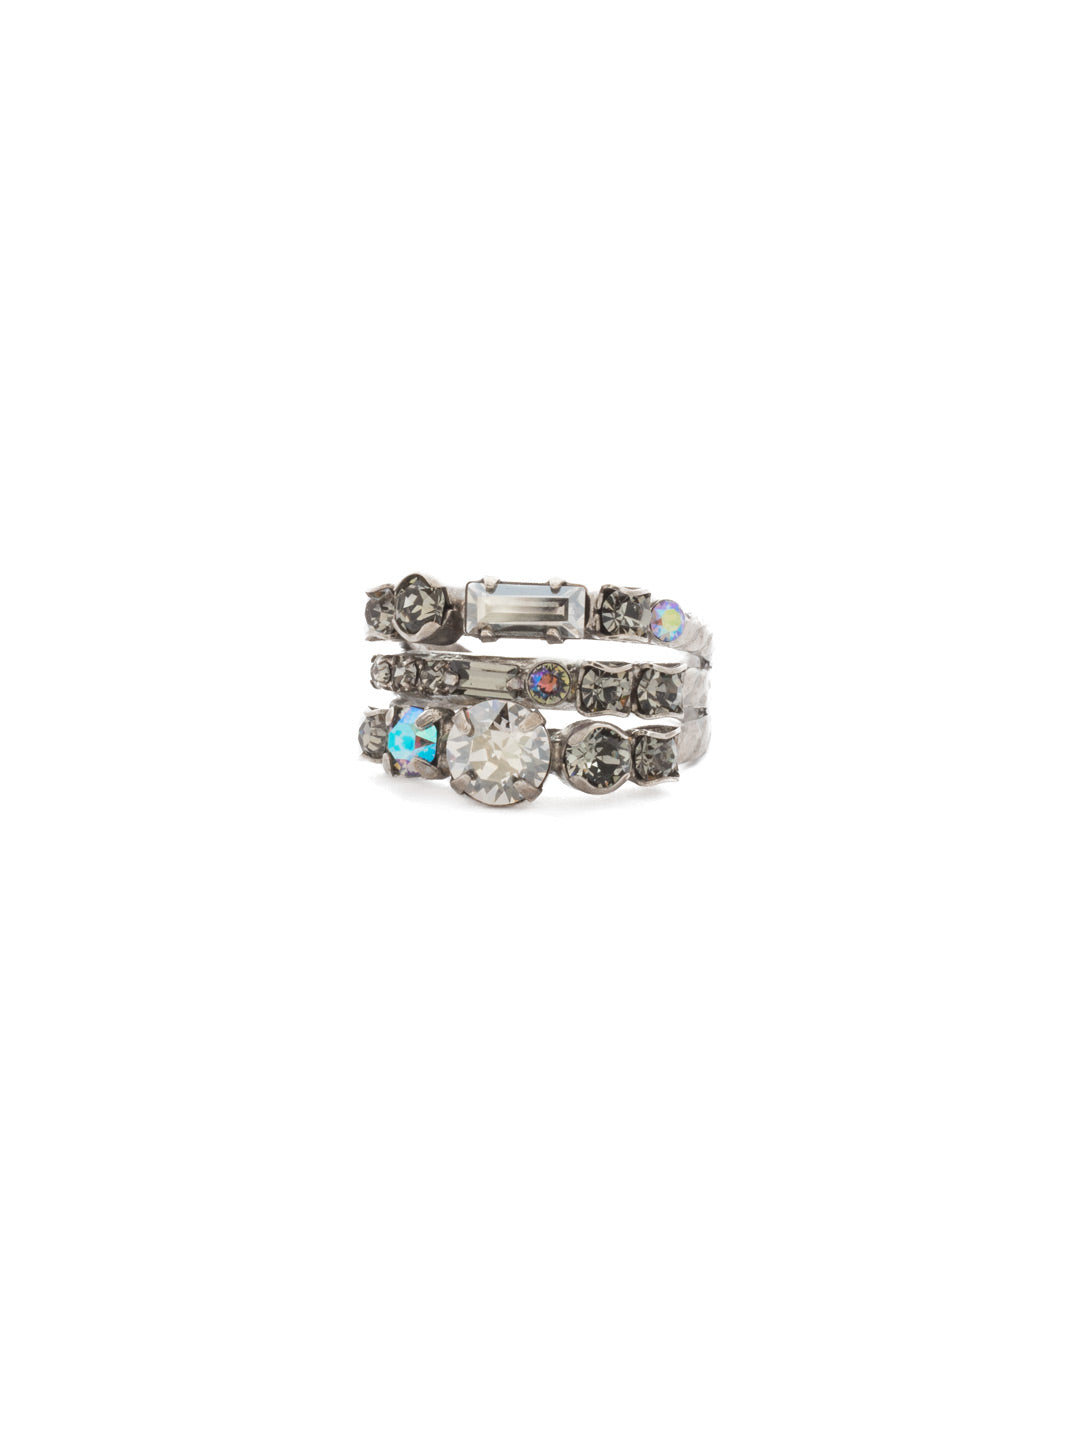 Triple Threat Stacked Ring - RDK23ASCRO